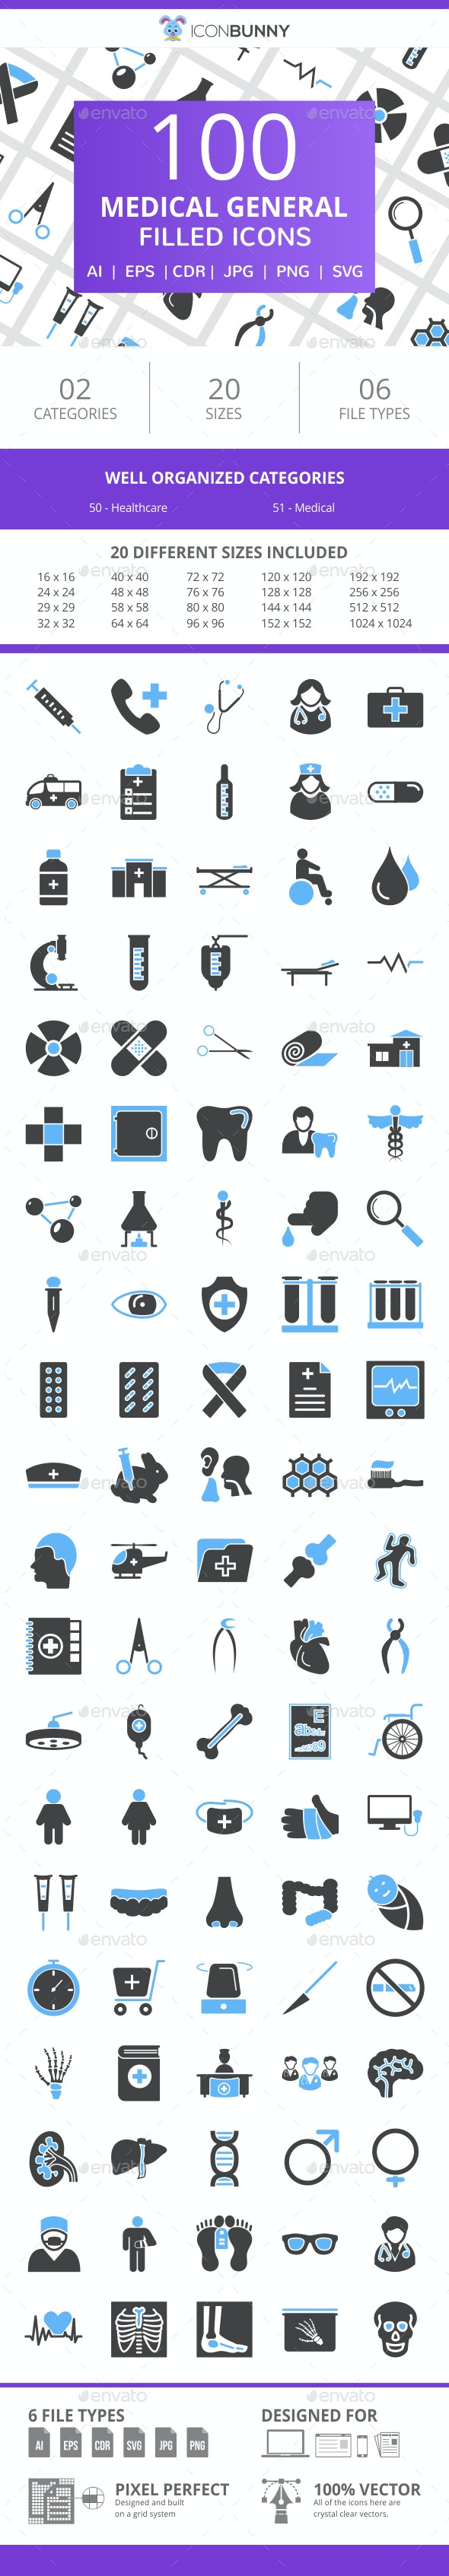 101 Medical General Filled Blue & Black Icons - Icons